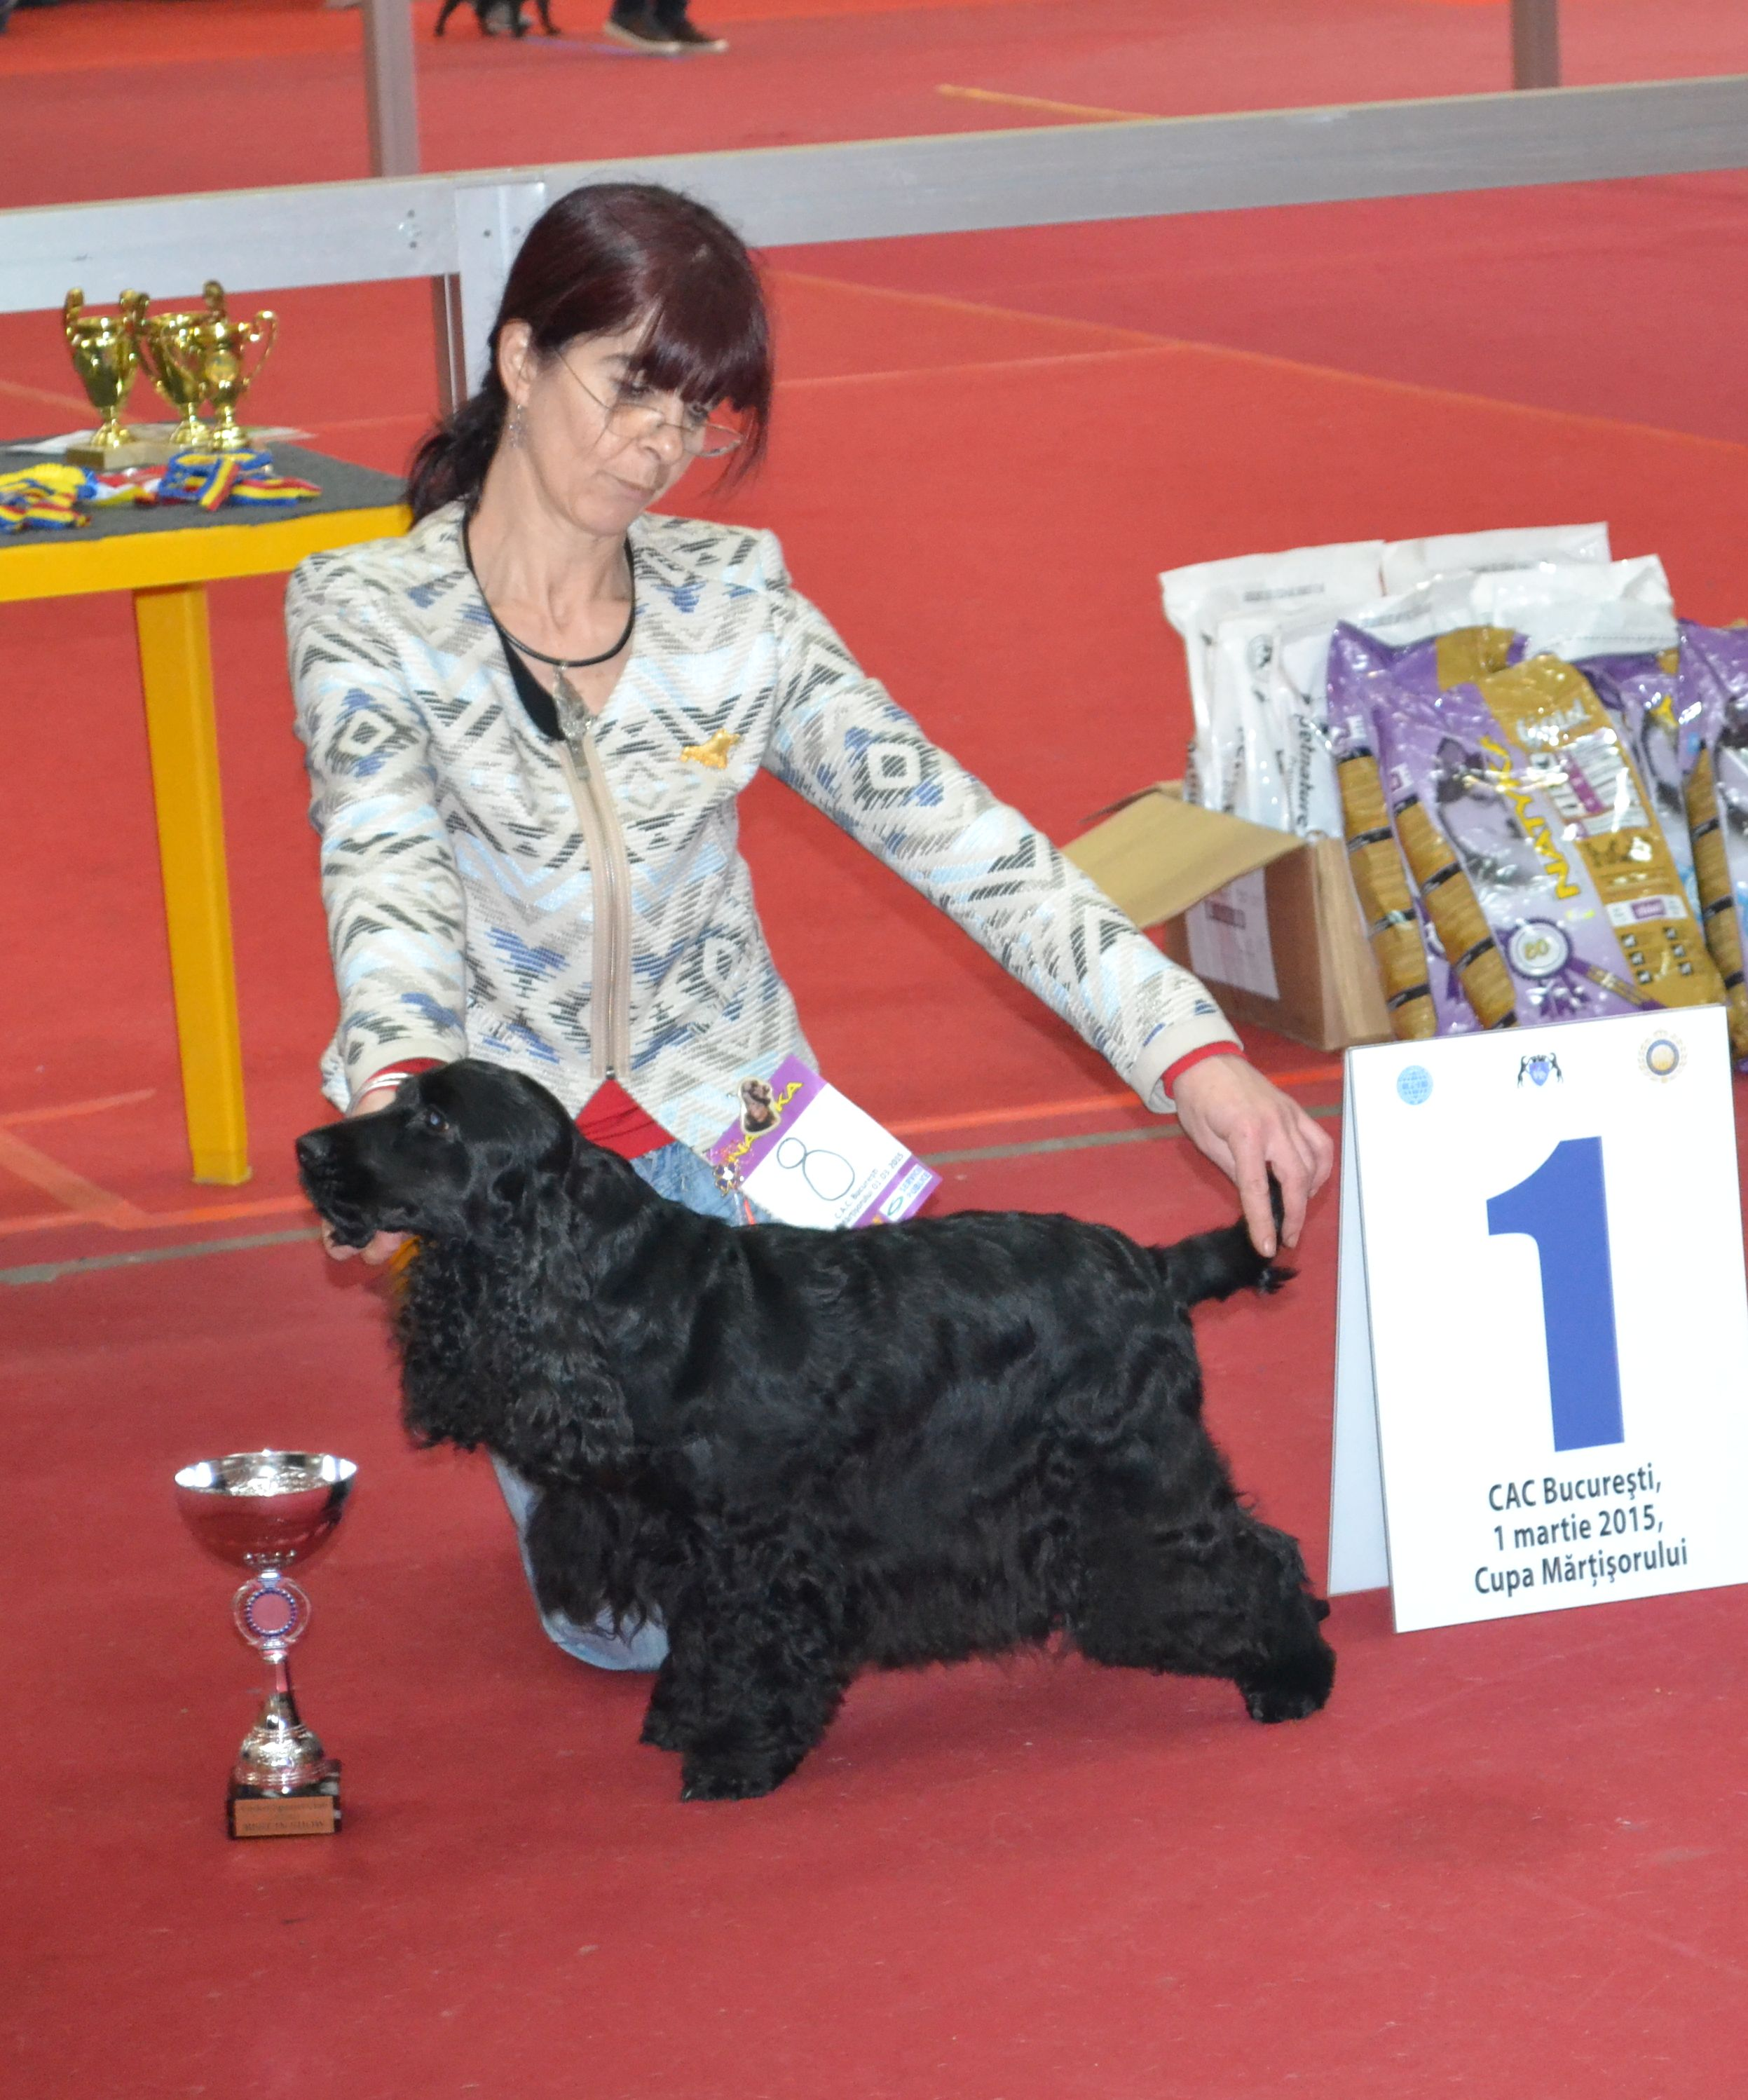 Best in show: Five o'Clock Dance Evelynn